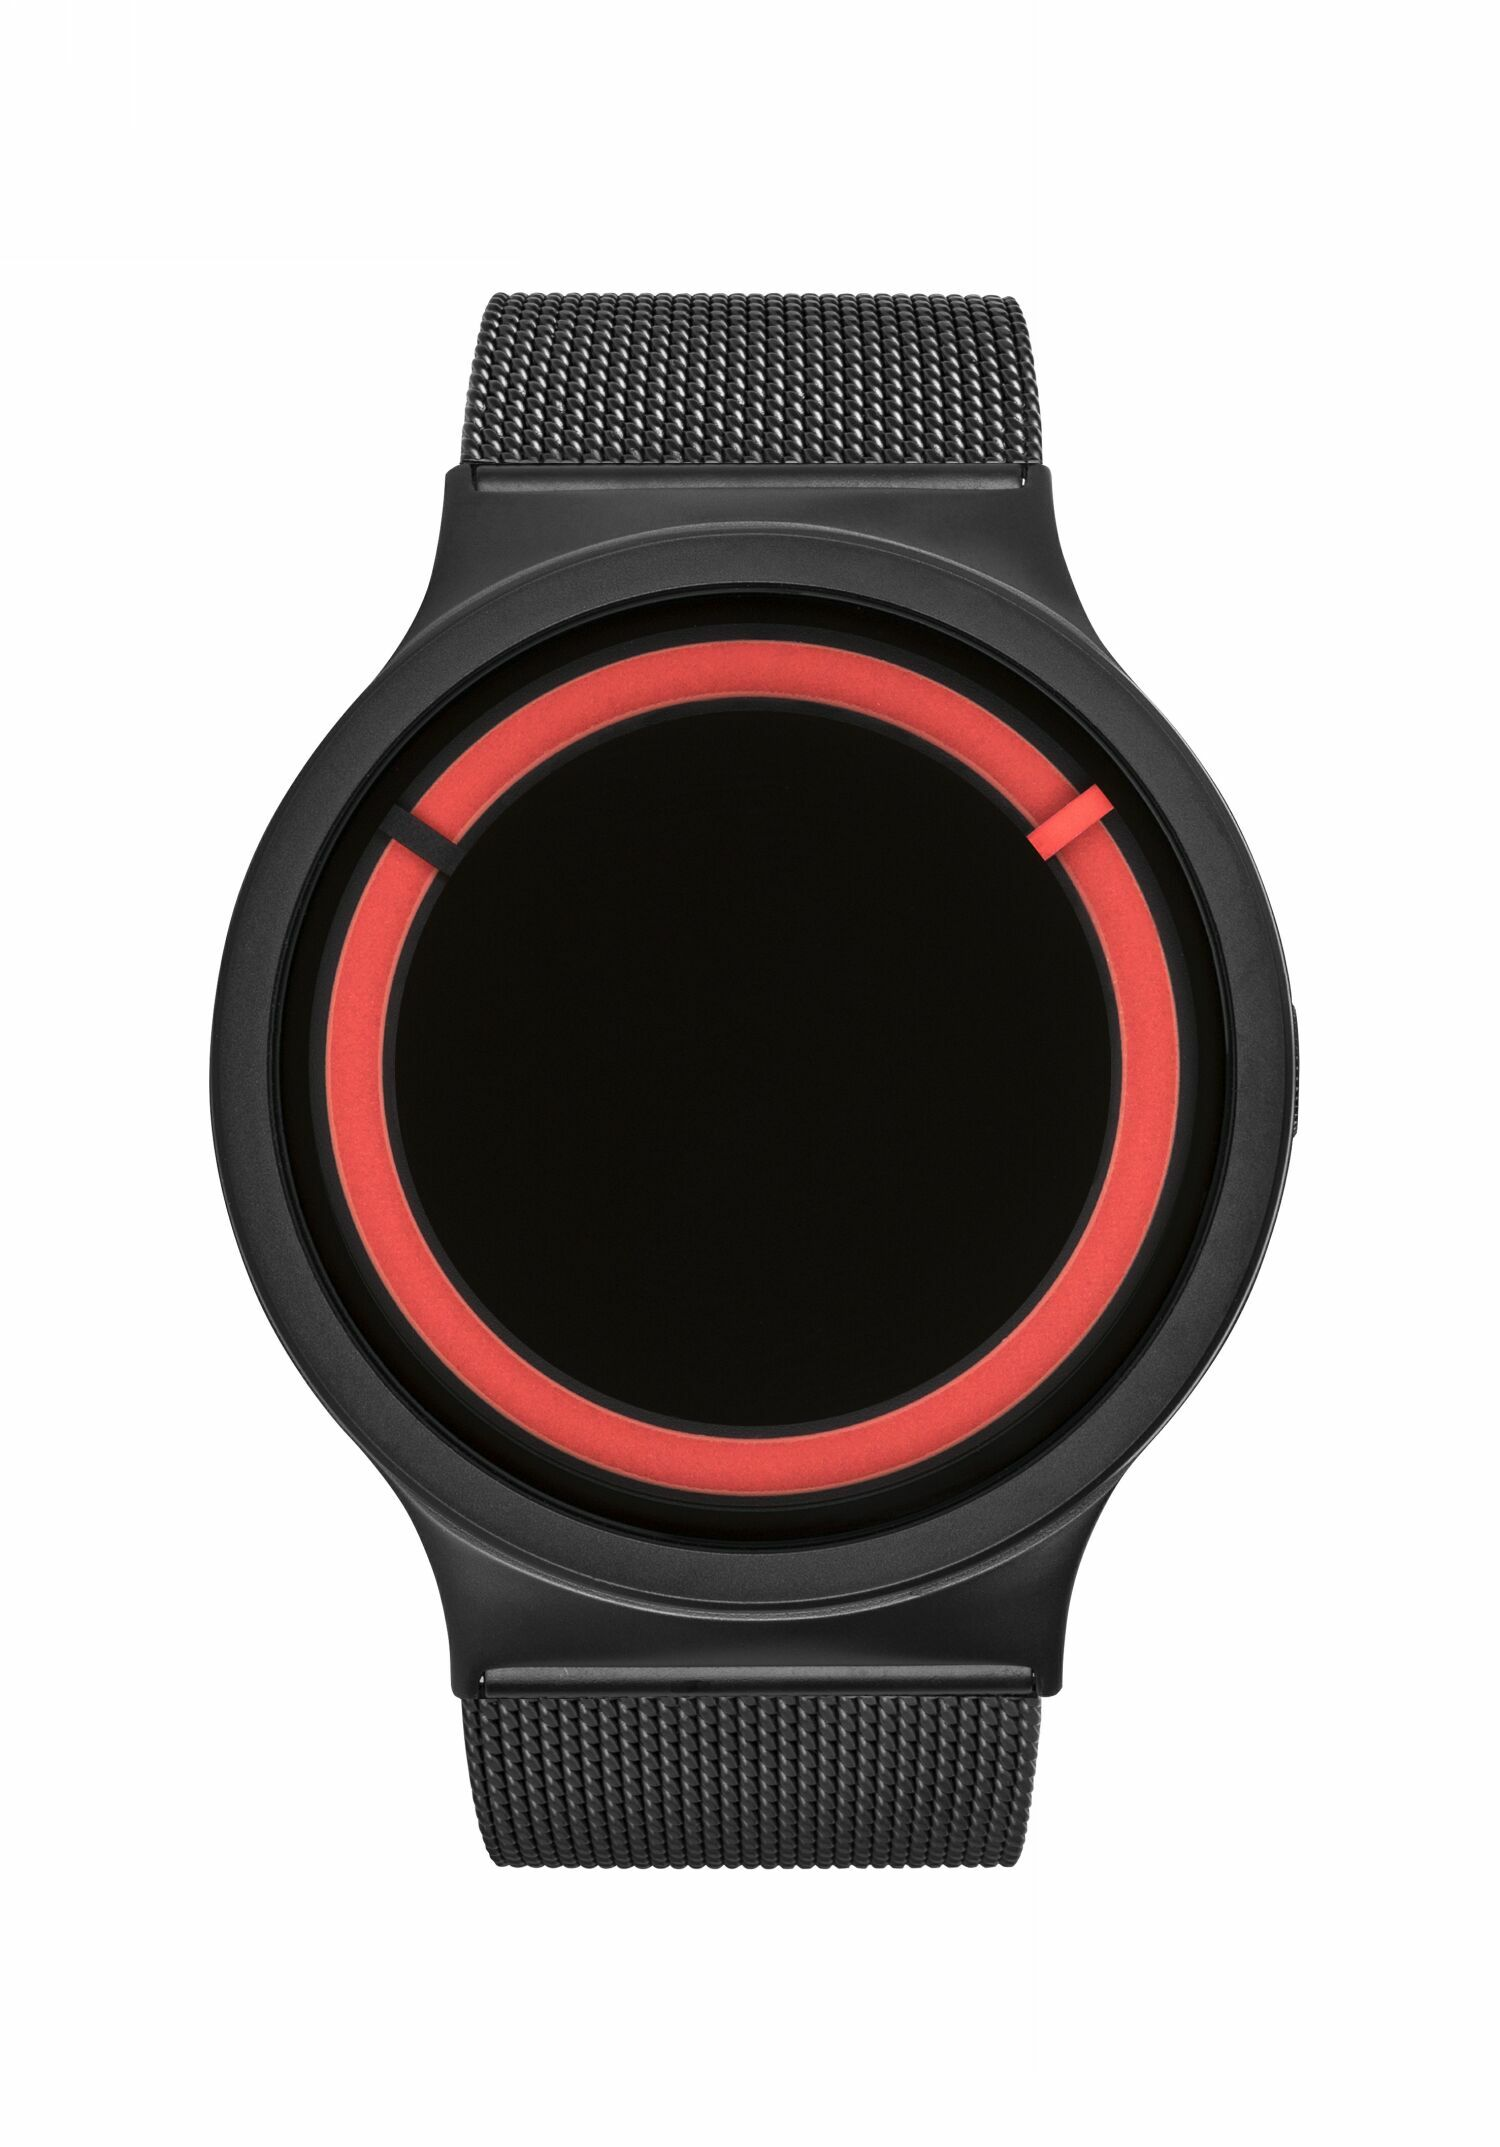 Пинкл (Pinkl) | Ziiiro Eclipse Metalic Black Red | Ziiiro Eclipse Metalic Black Red